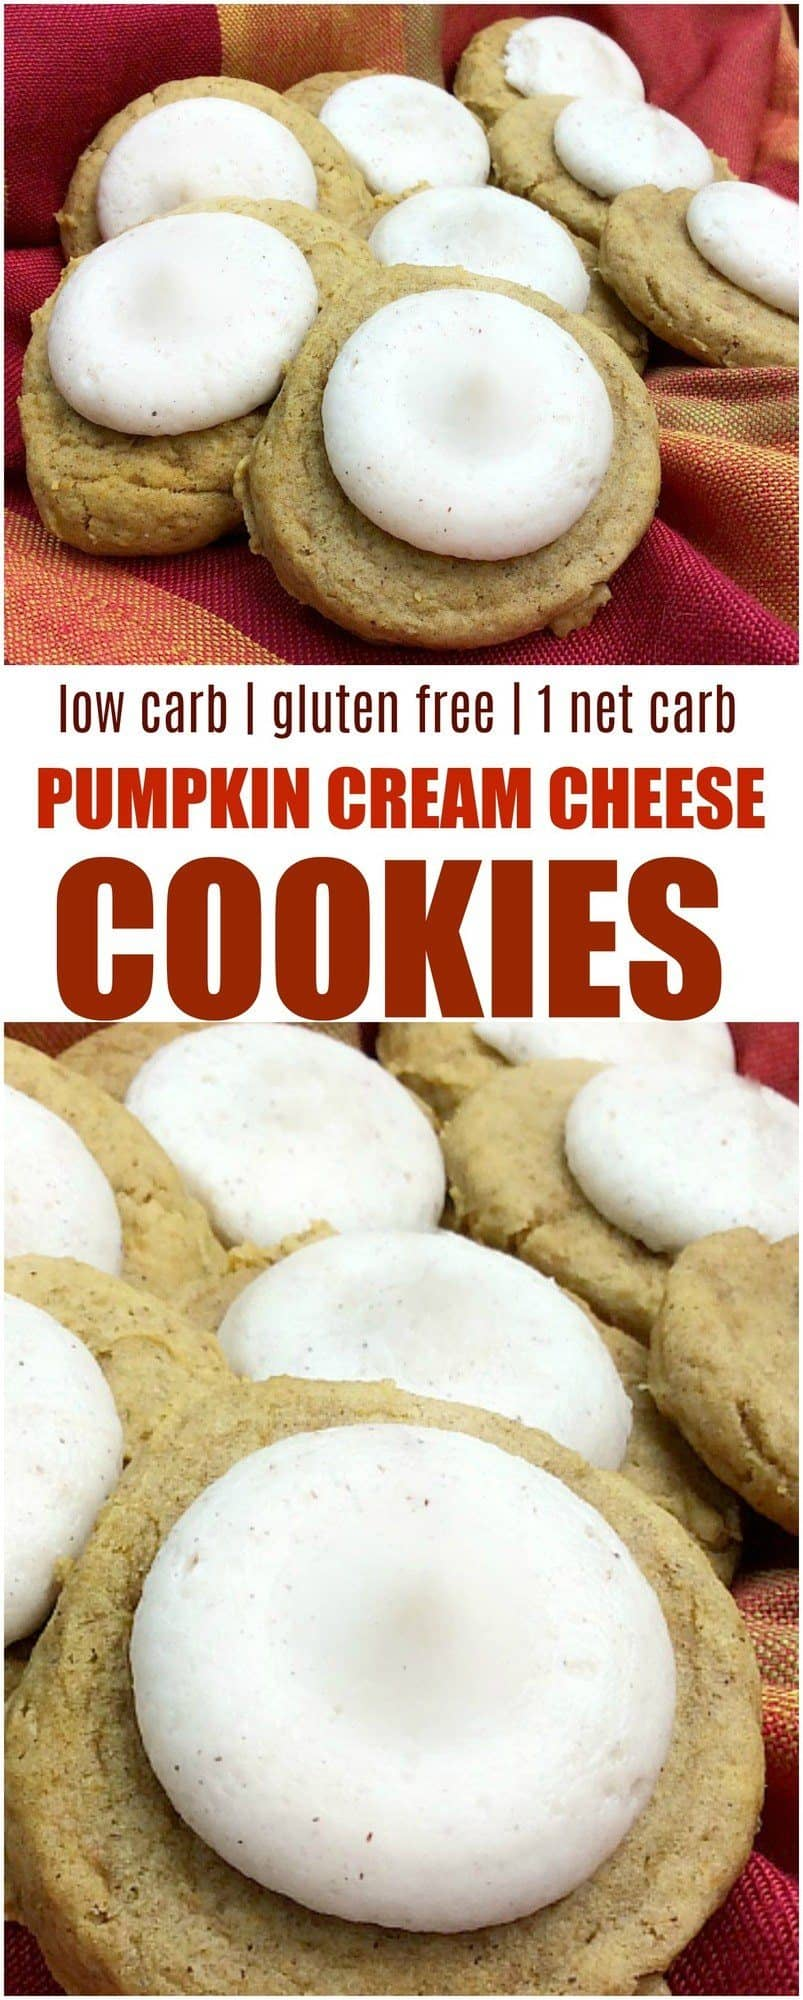 LOW CARB Pumpkin cream cheese cookies